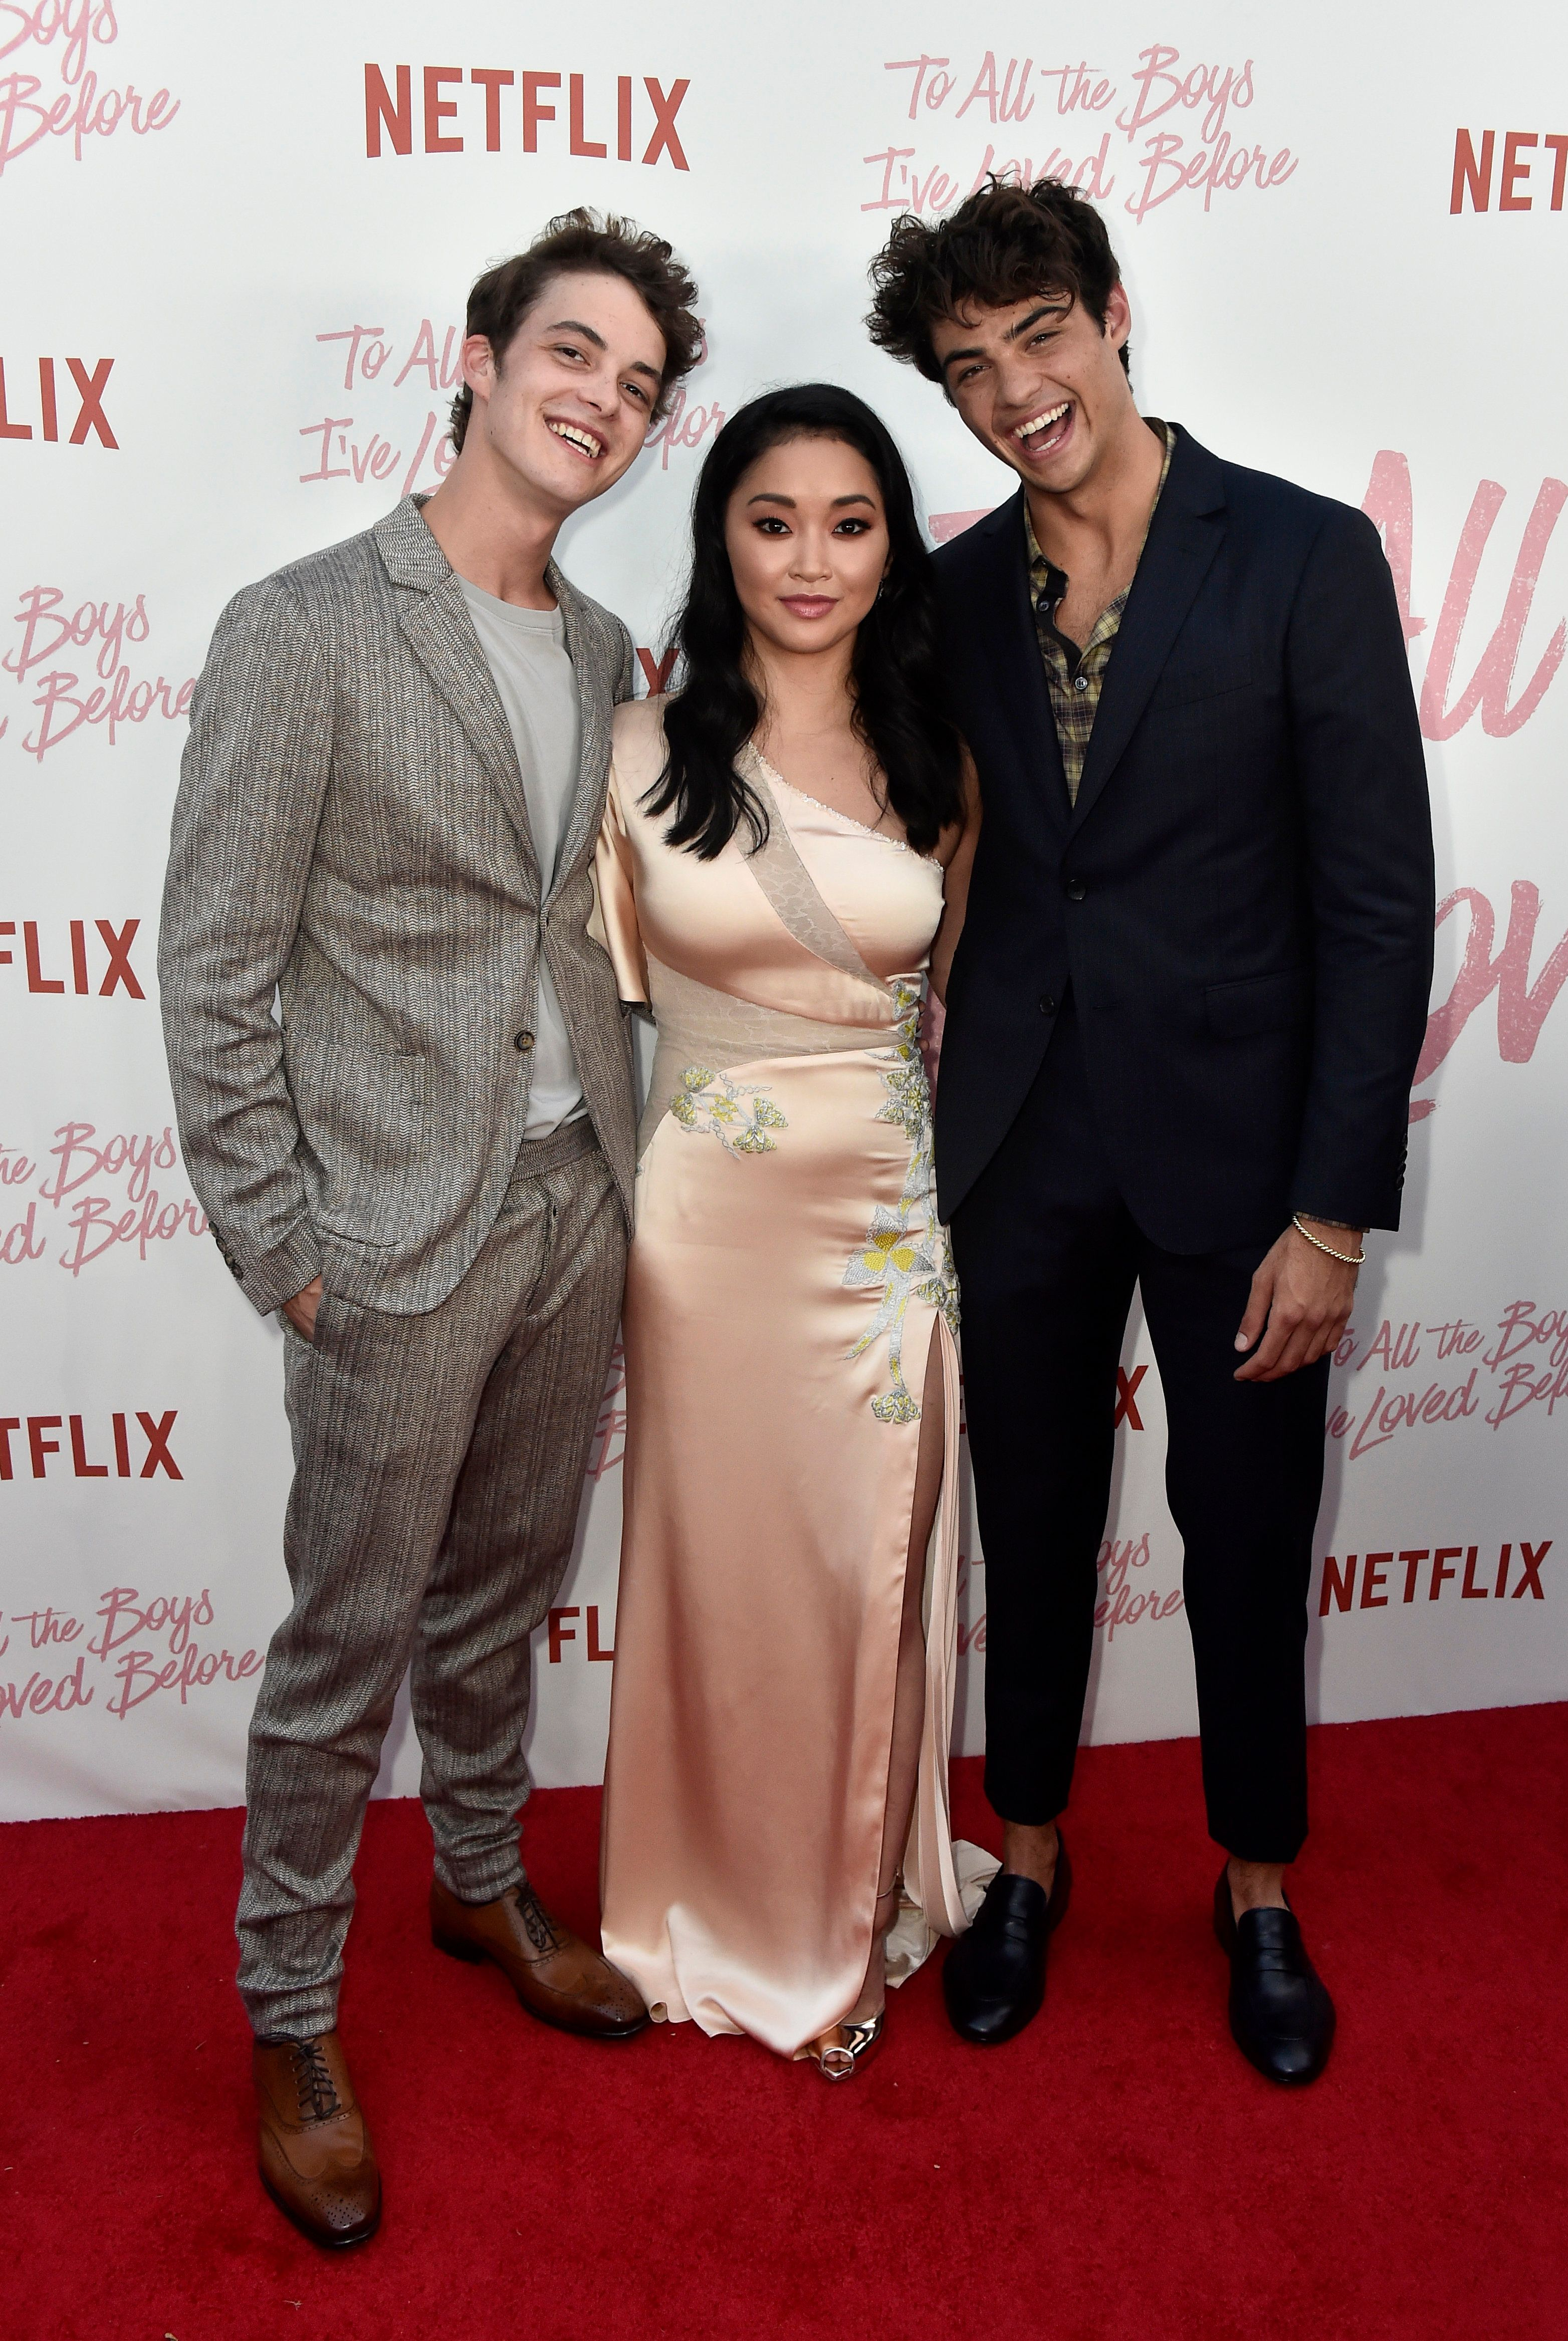 CULVER CITY, CA - AUGUST 16:  Israel Broussard, Lana Condor, Noah Centineo attend the Screening Of Netflix's 'To All The Boys I've Loved Before' at Arclight Cinemas Culver City on August 16, 2018 in Culver City, California.  (Photo by Frazer Harrison/Getty Images)